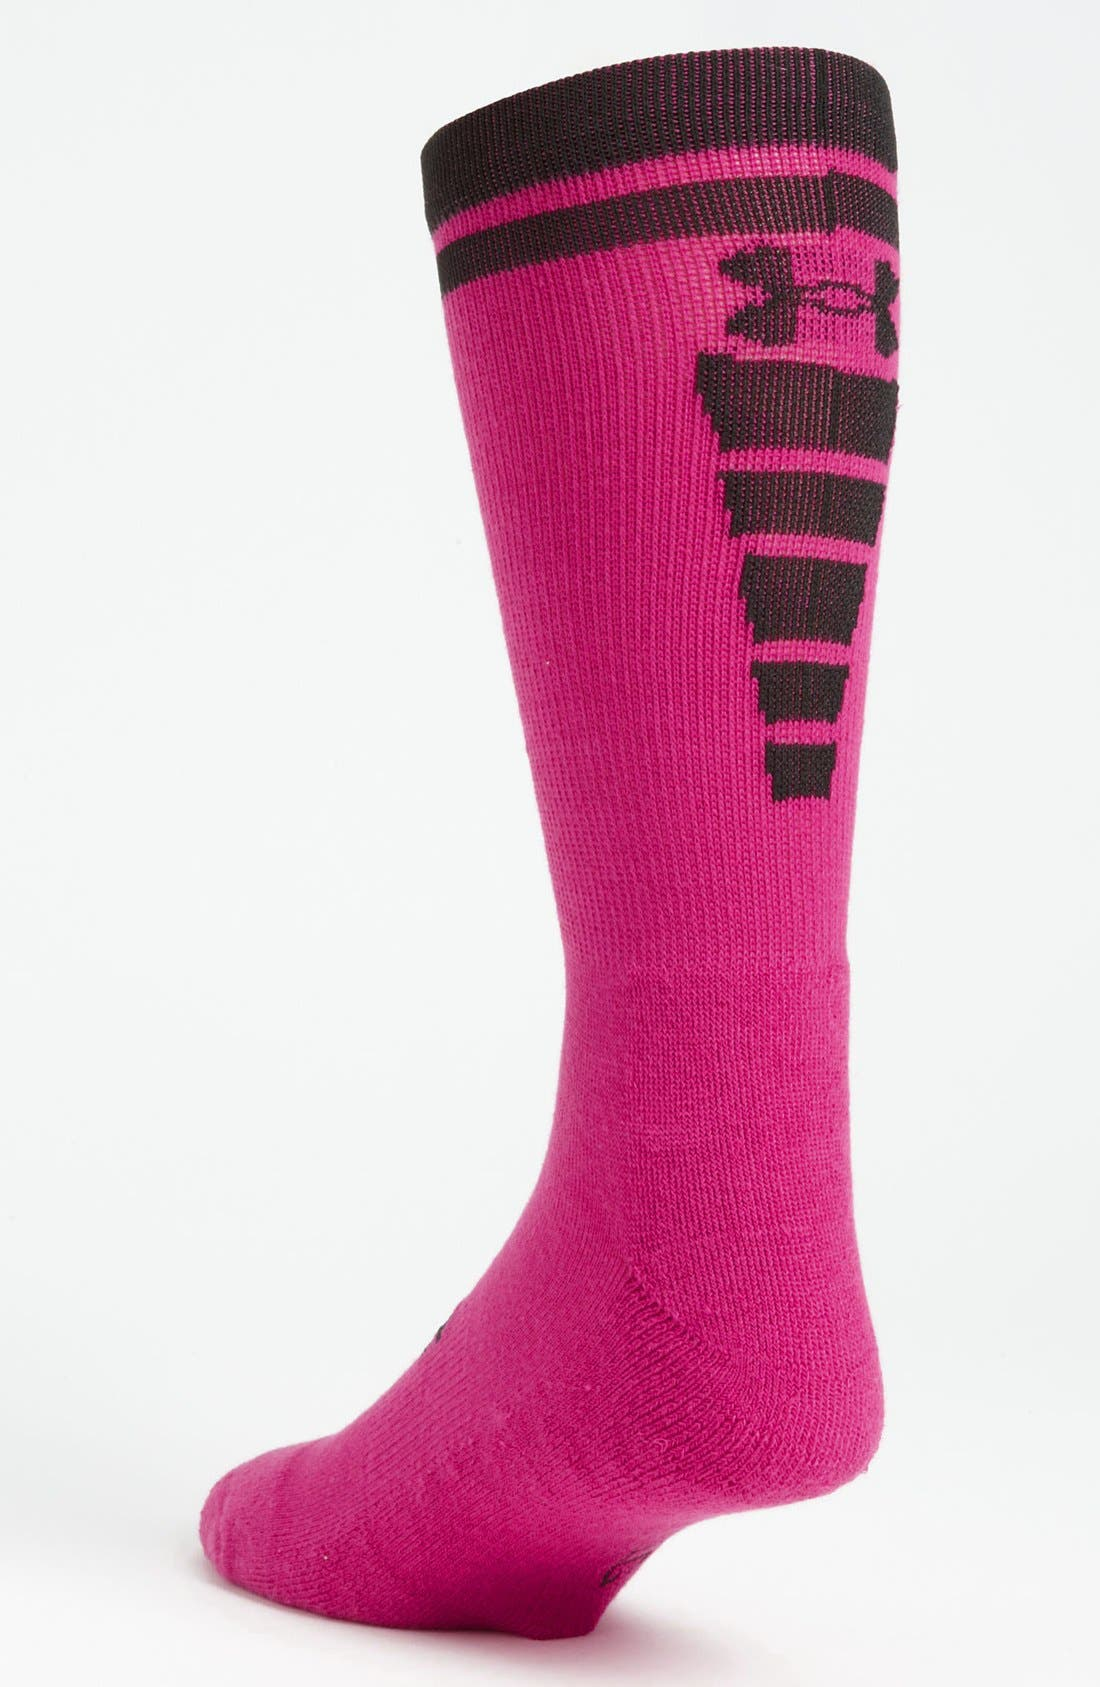 Alternate Image 2  - Under Armour 'Zagger' Crew Socks